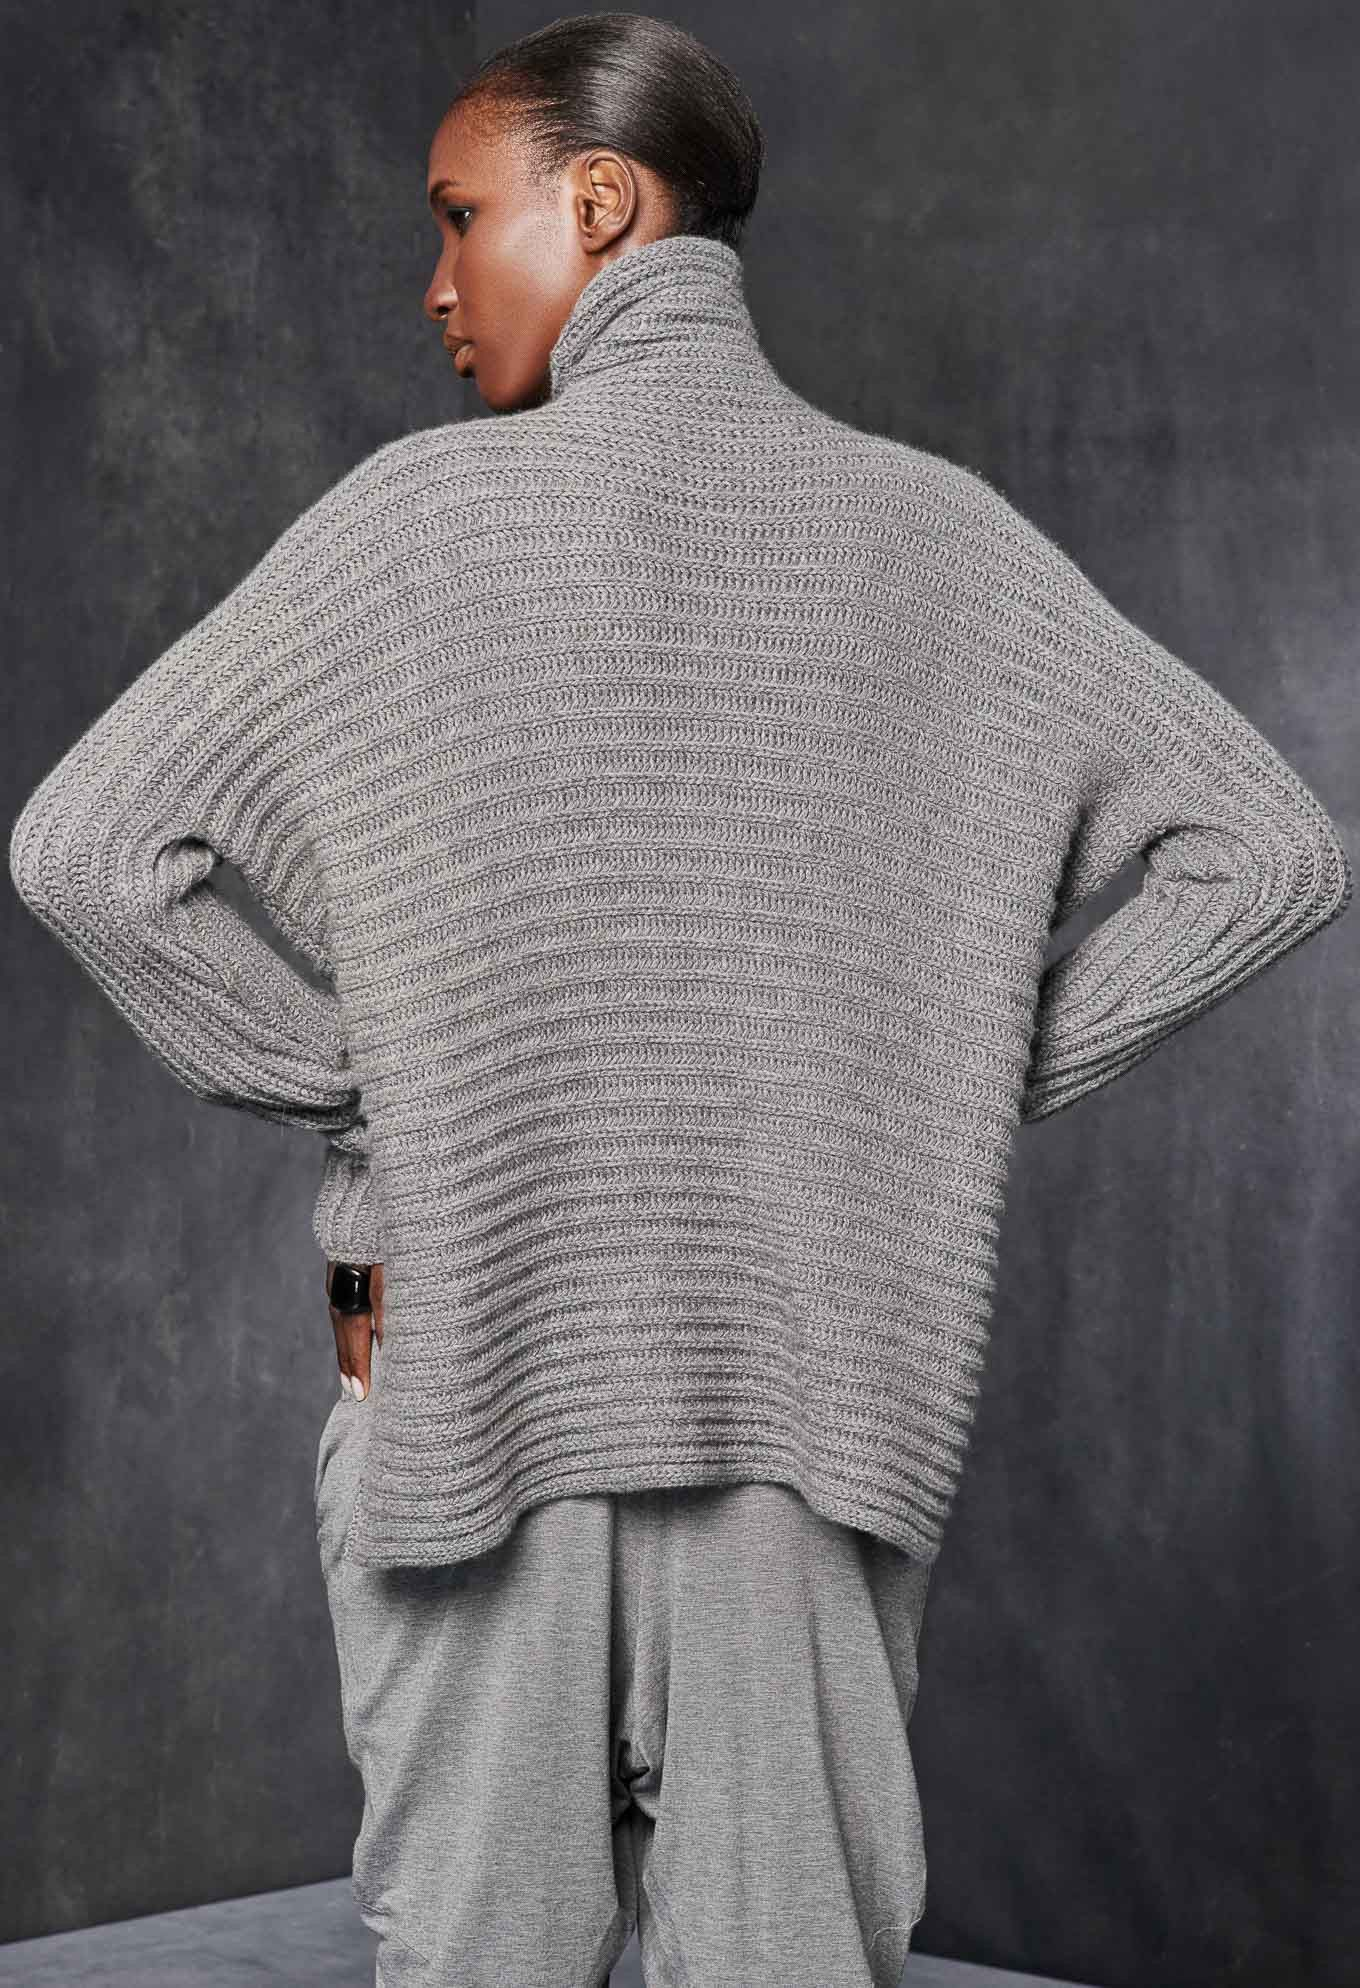 Relaxed horizontal rib knit high neck sweater. Additional Information 100%  CASHMERE Made of Italian